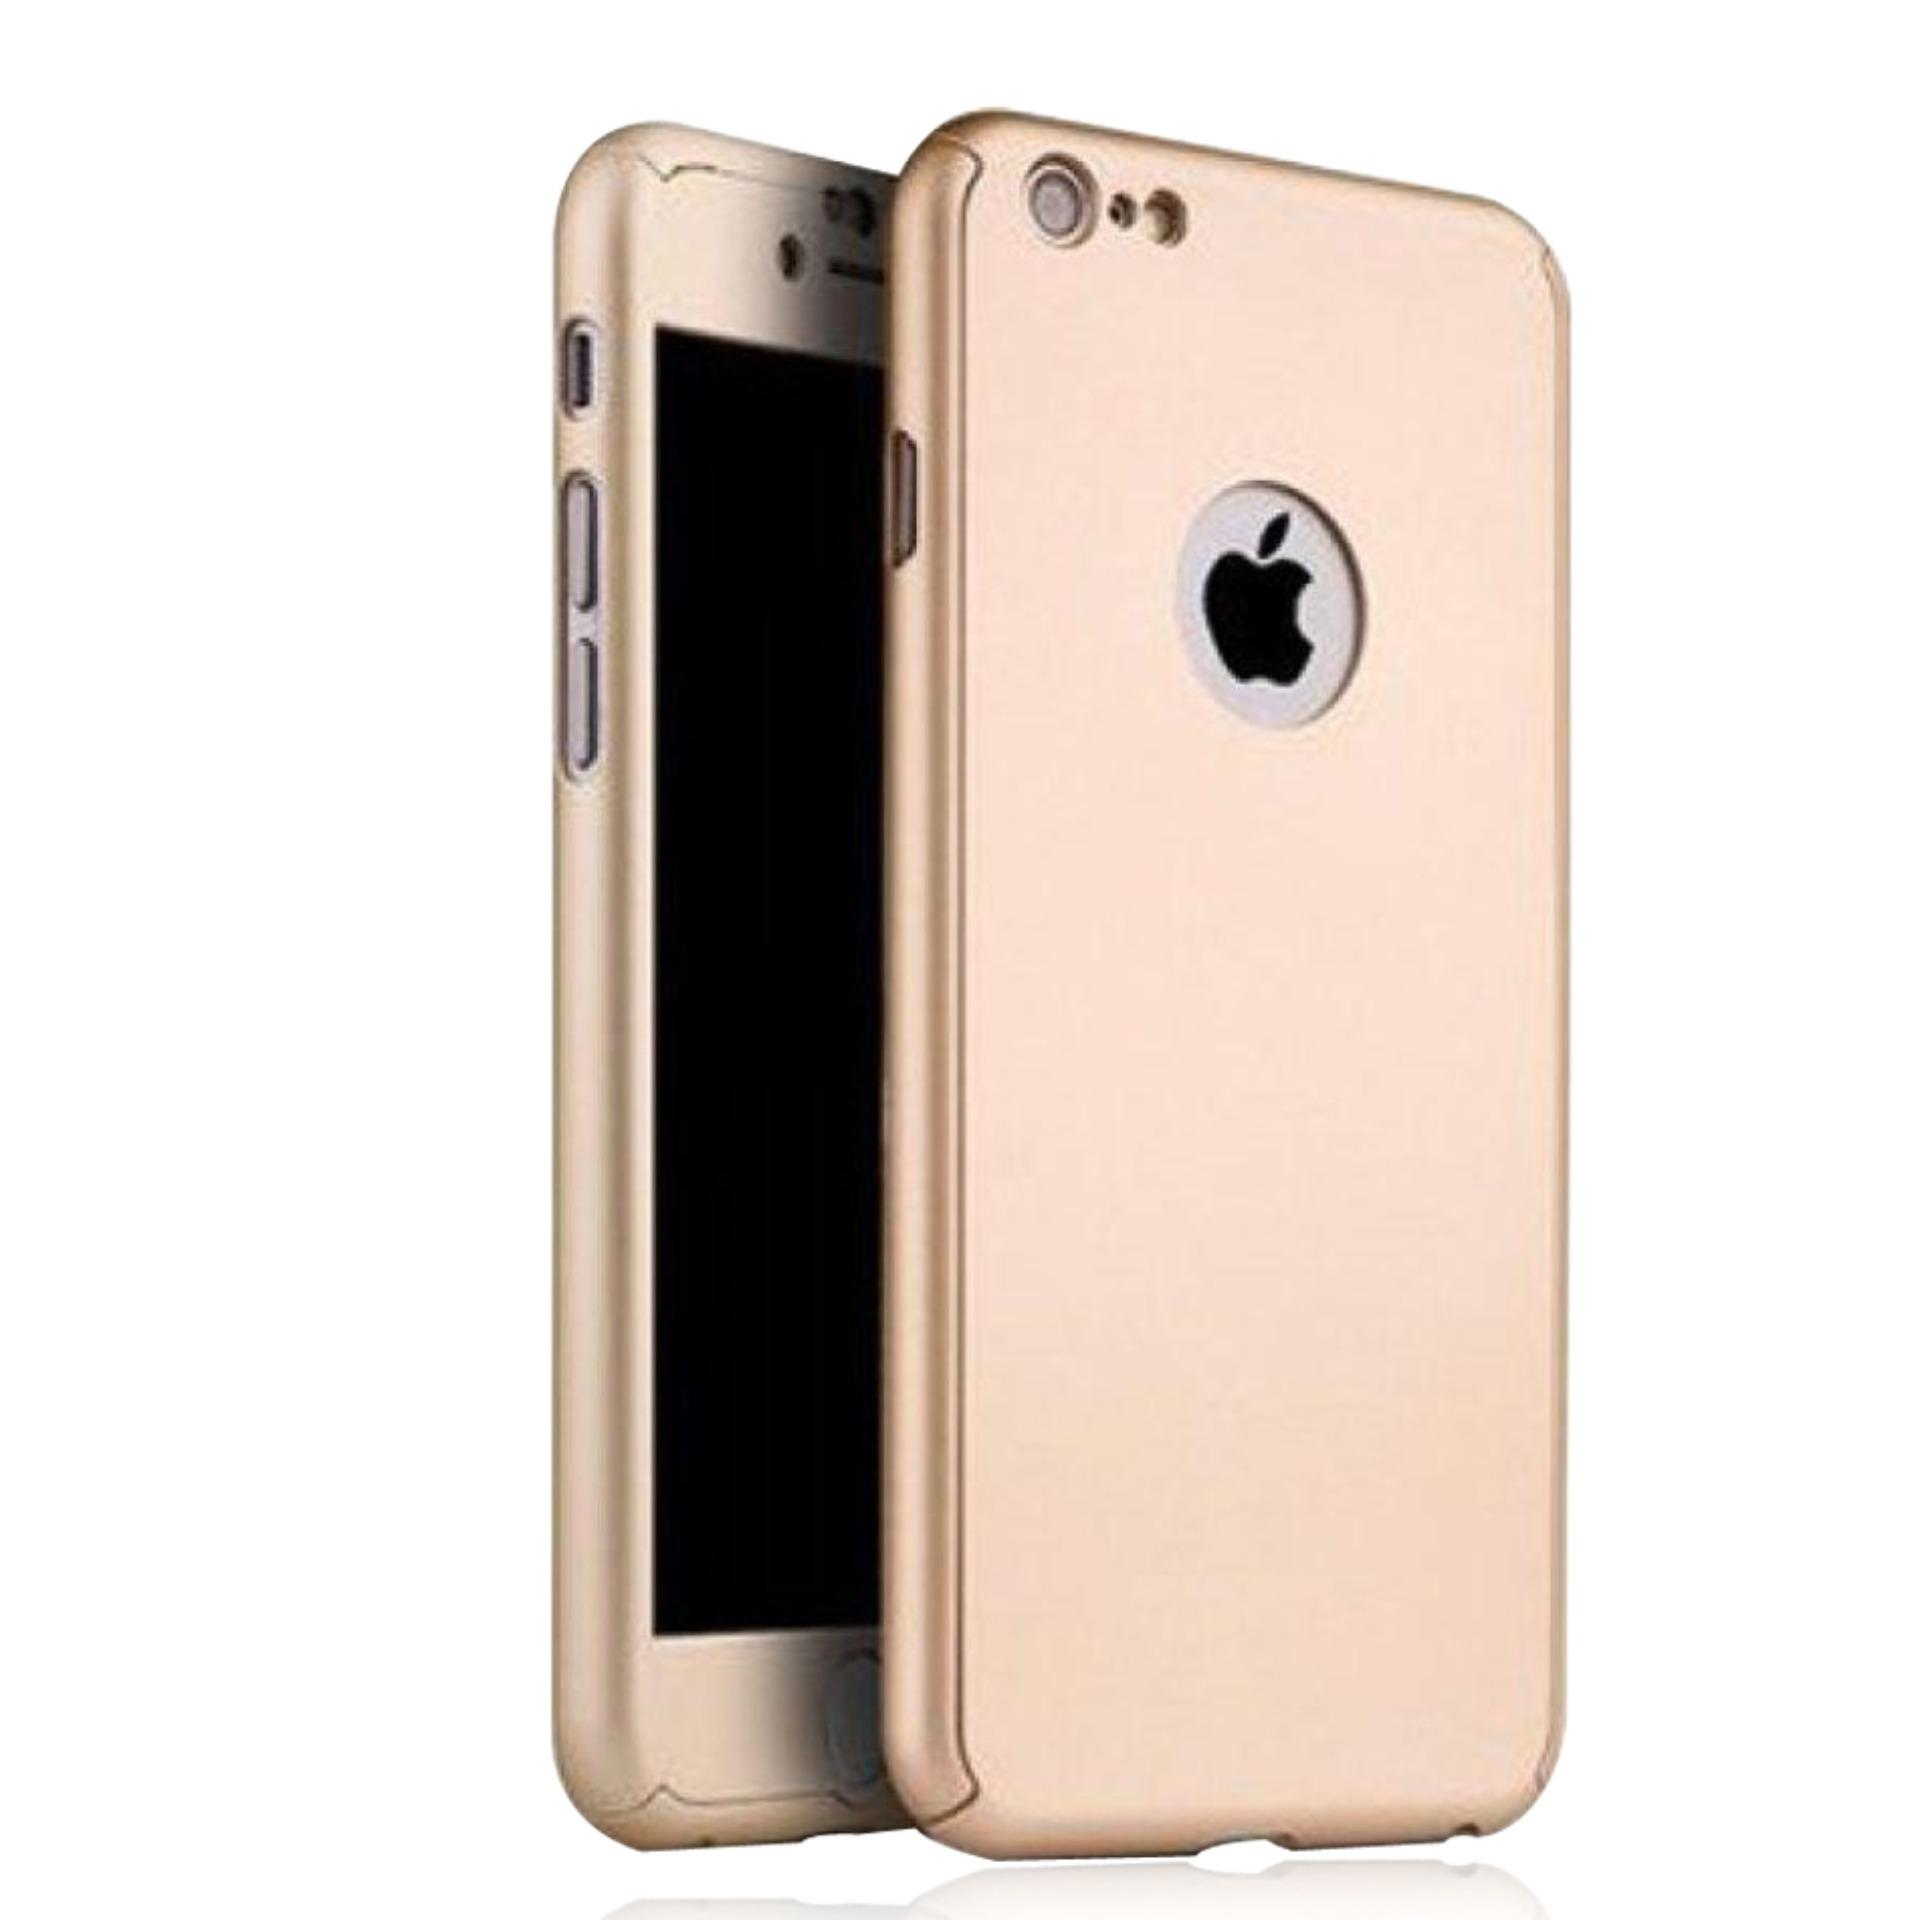 Casing Full Cover Hardcase 360 Free Tempered Glass For Iphone 6/6s